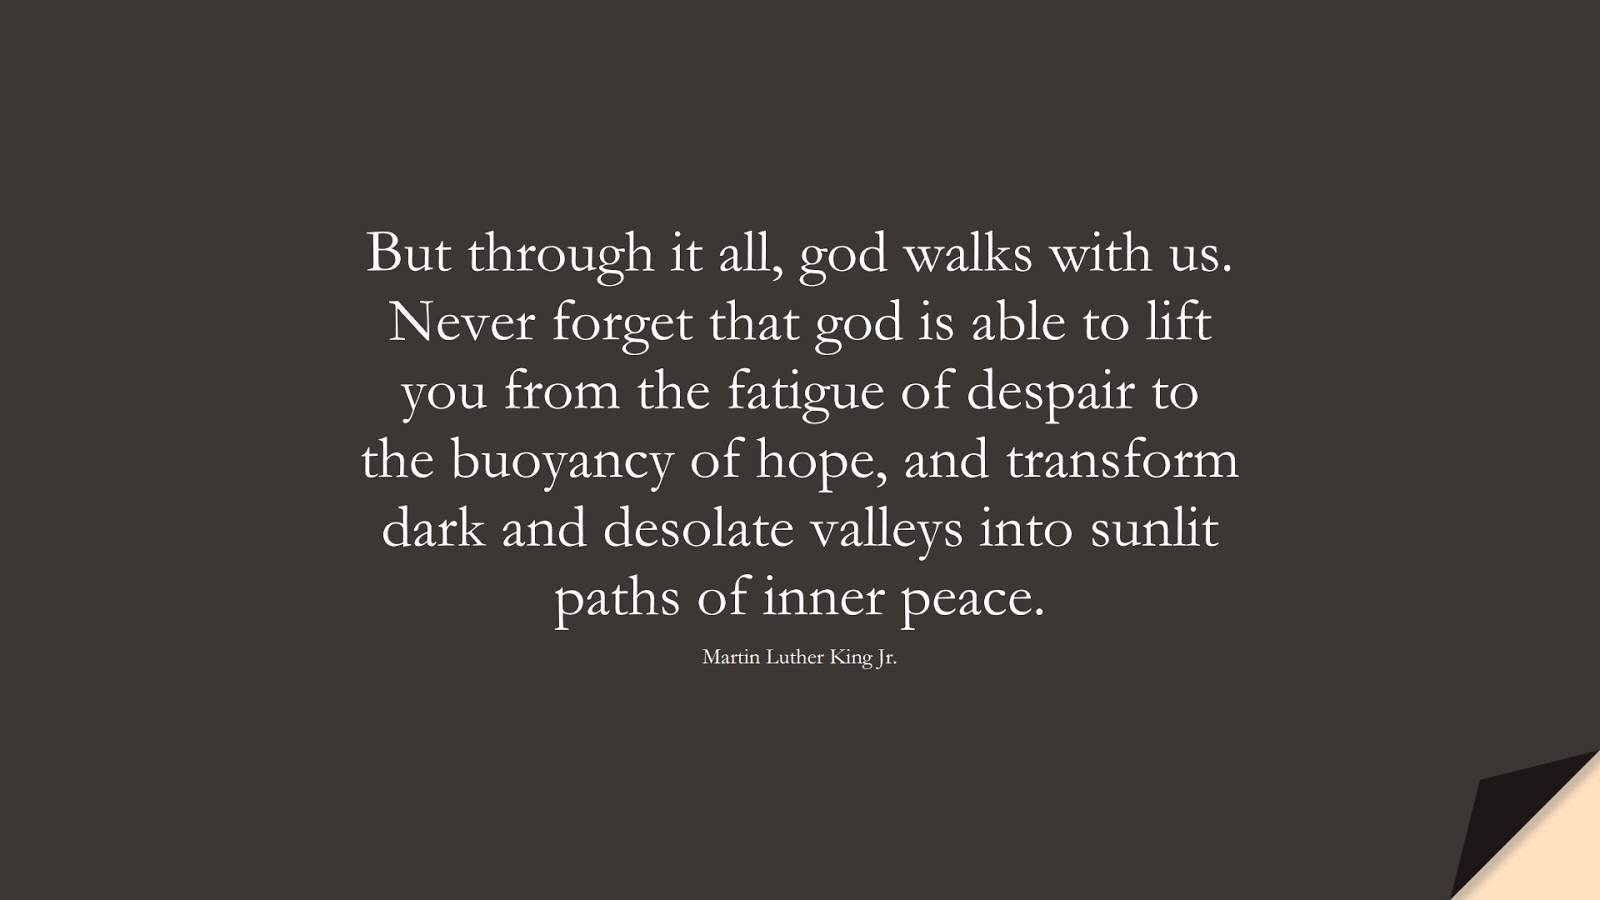 But through it all, god walks with us. Never forget that god is able to lift you from the fatigue of despair to the buoyancy of hope, and transform dark and desolate valleys into sunlit paths of inner peace. (Martin Luther King Jr.);  #MartinLutherKingJrQuotes